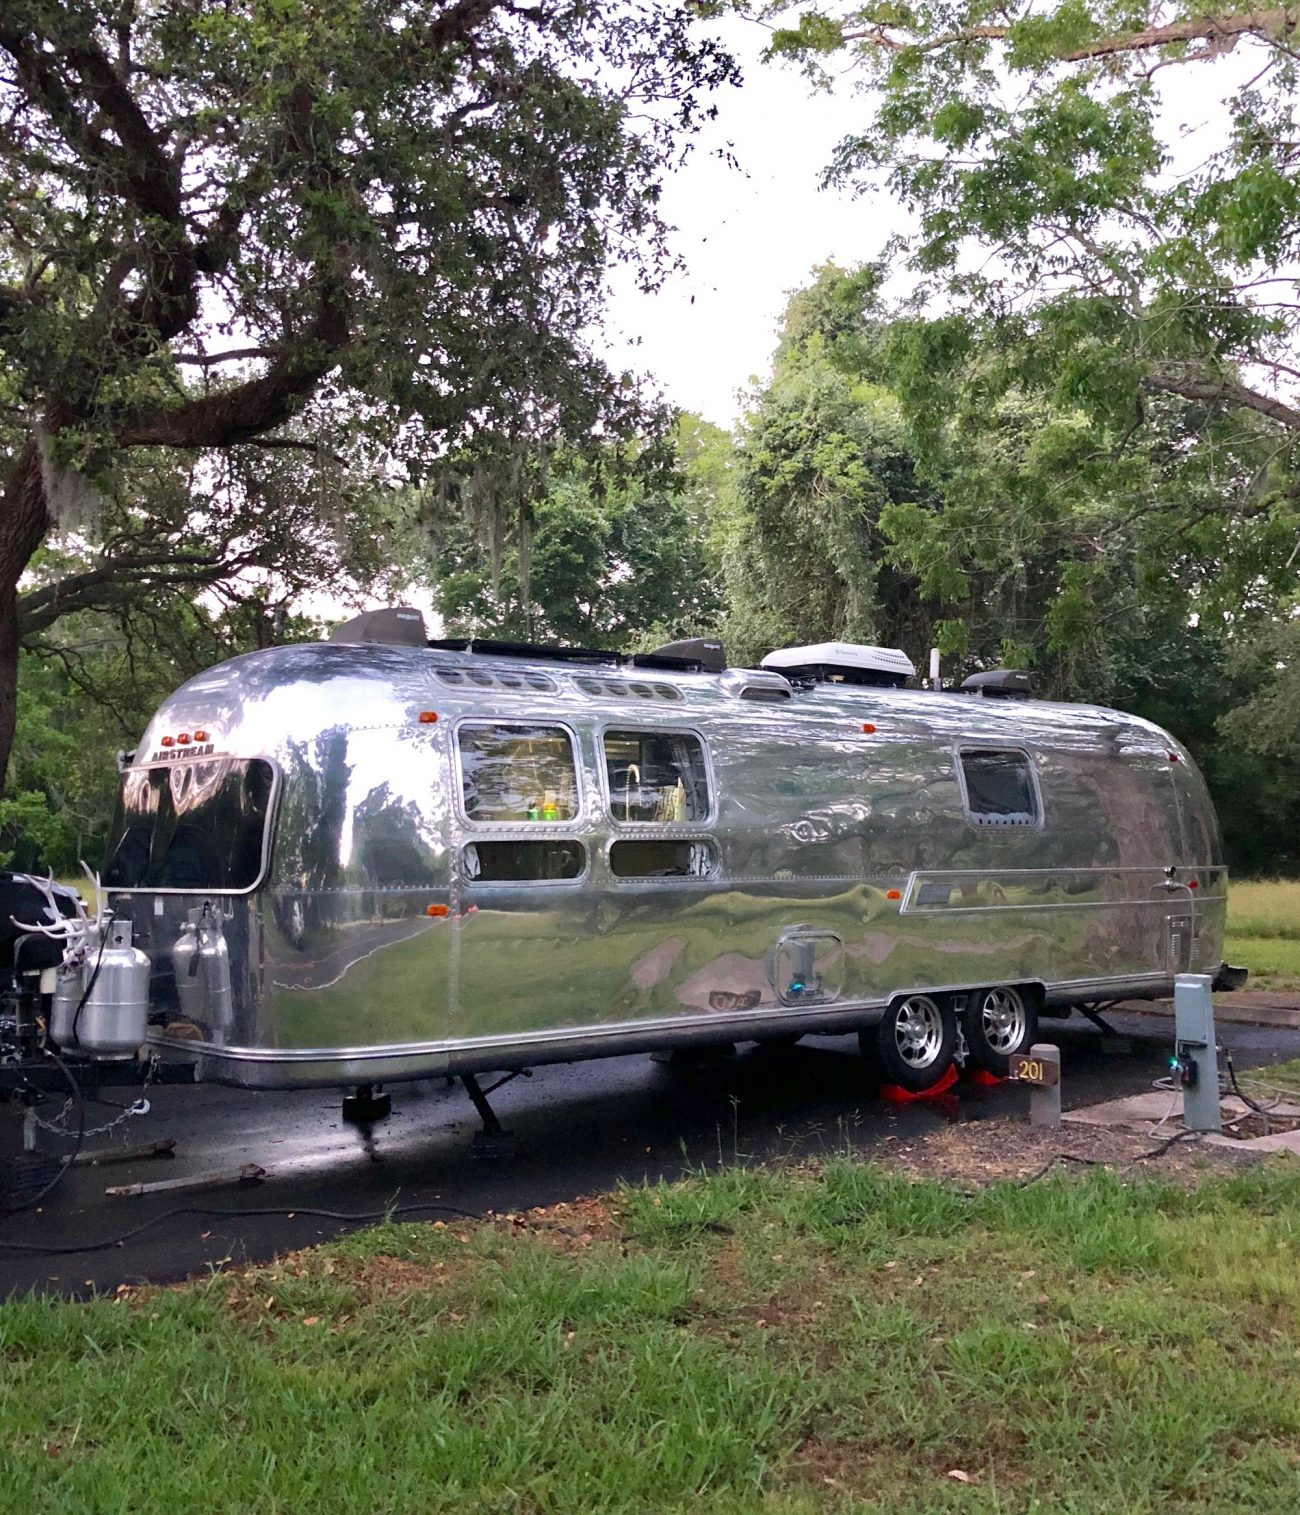 Airstream at campsite after getting washed.